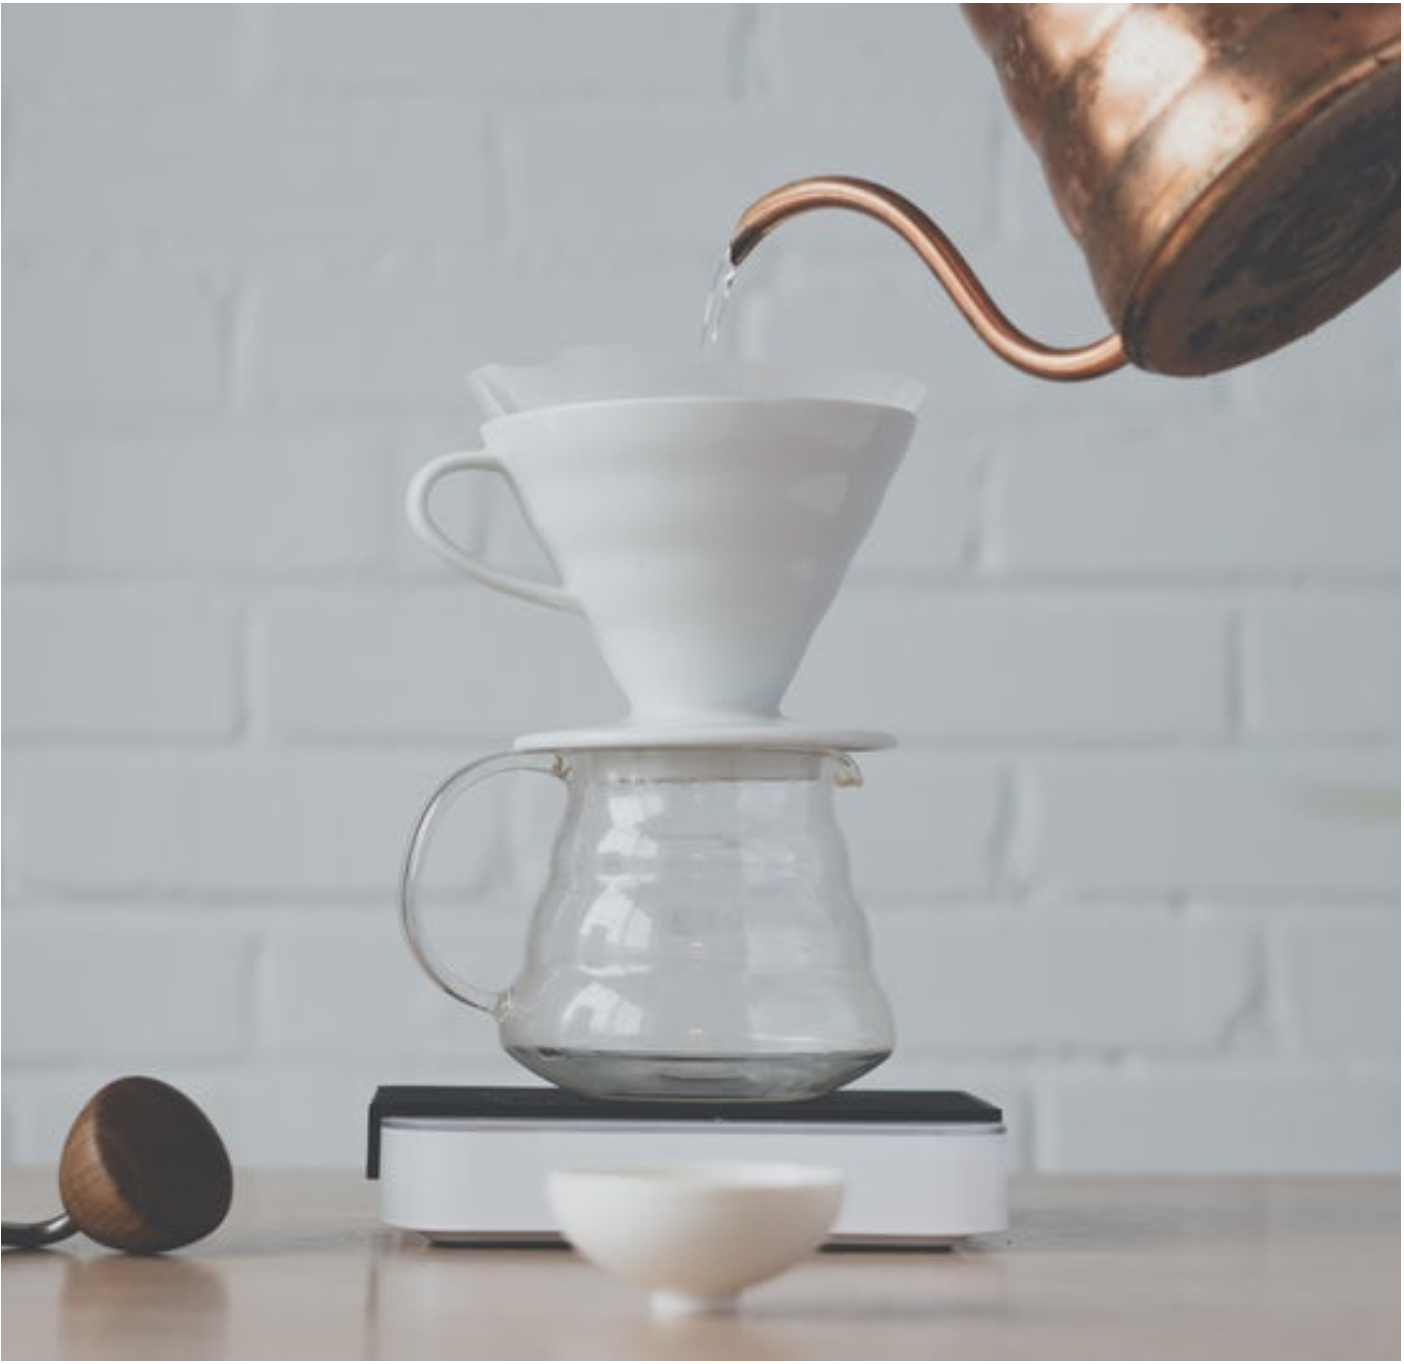 Hario V60 pour-over featured with a gooseneck kettle